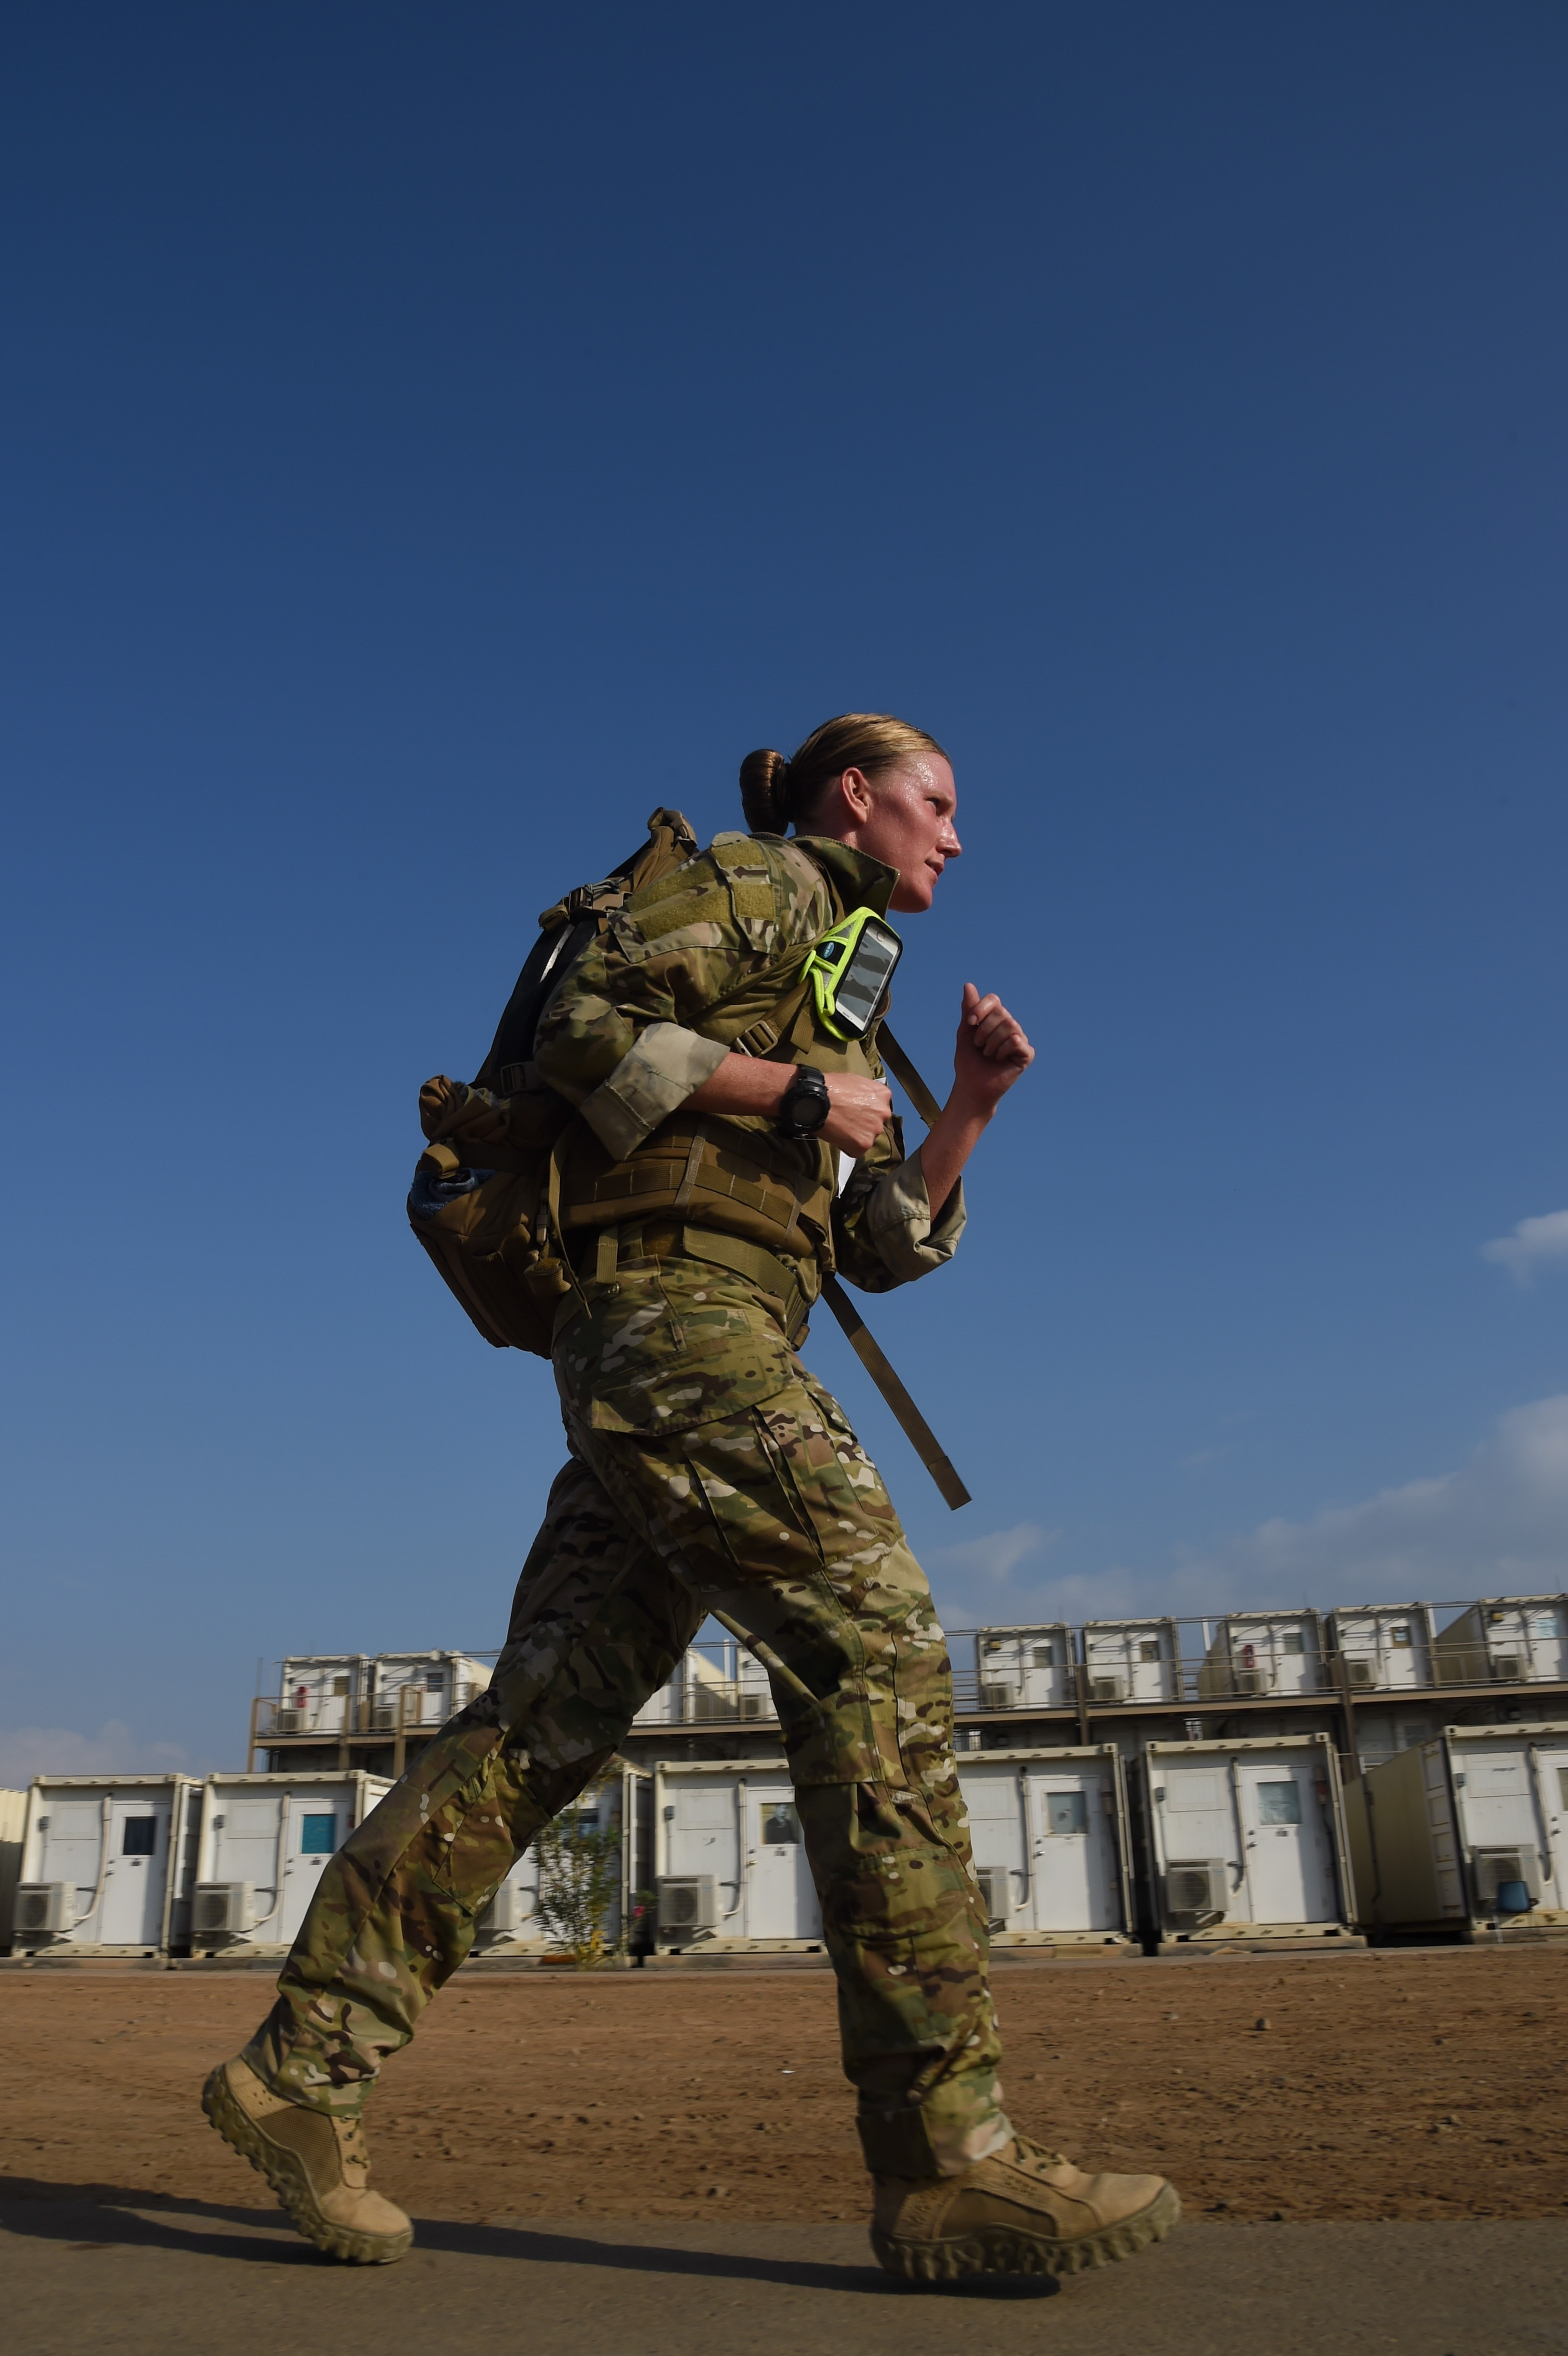 U.S. Navy Lt. j.g. Christina Hammervold, Task Force Sparta platoon commander, runs a five-mile Army ruck march during the Joint Warrior Competition, Nov. 19, 2016, Camp Lemonnier, Djibouti. The ruck march began after participants had already completed a two-mile run, pull-ups, sit-ups, and push-ups. Members had to carry a minimum of 35 pounds during the march. (U.S. Air National Guard photo by Staff Sgt. Penny Snoozy)